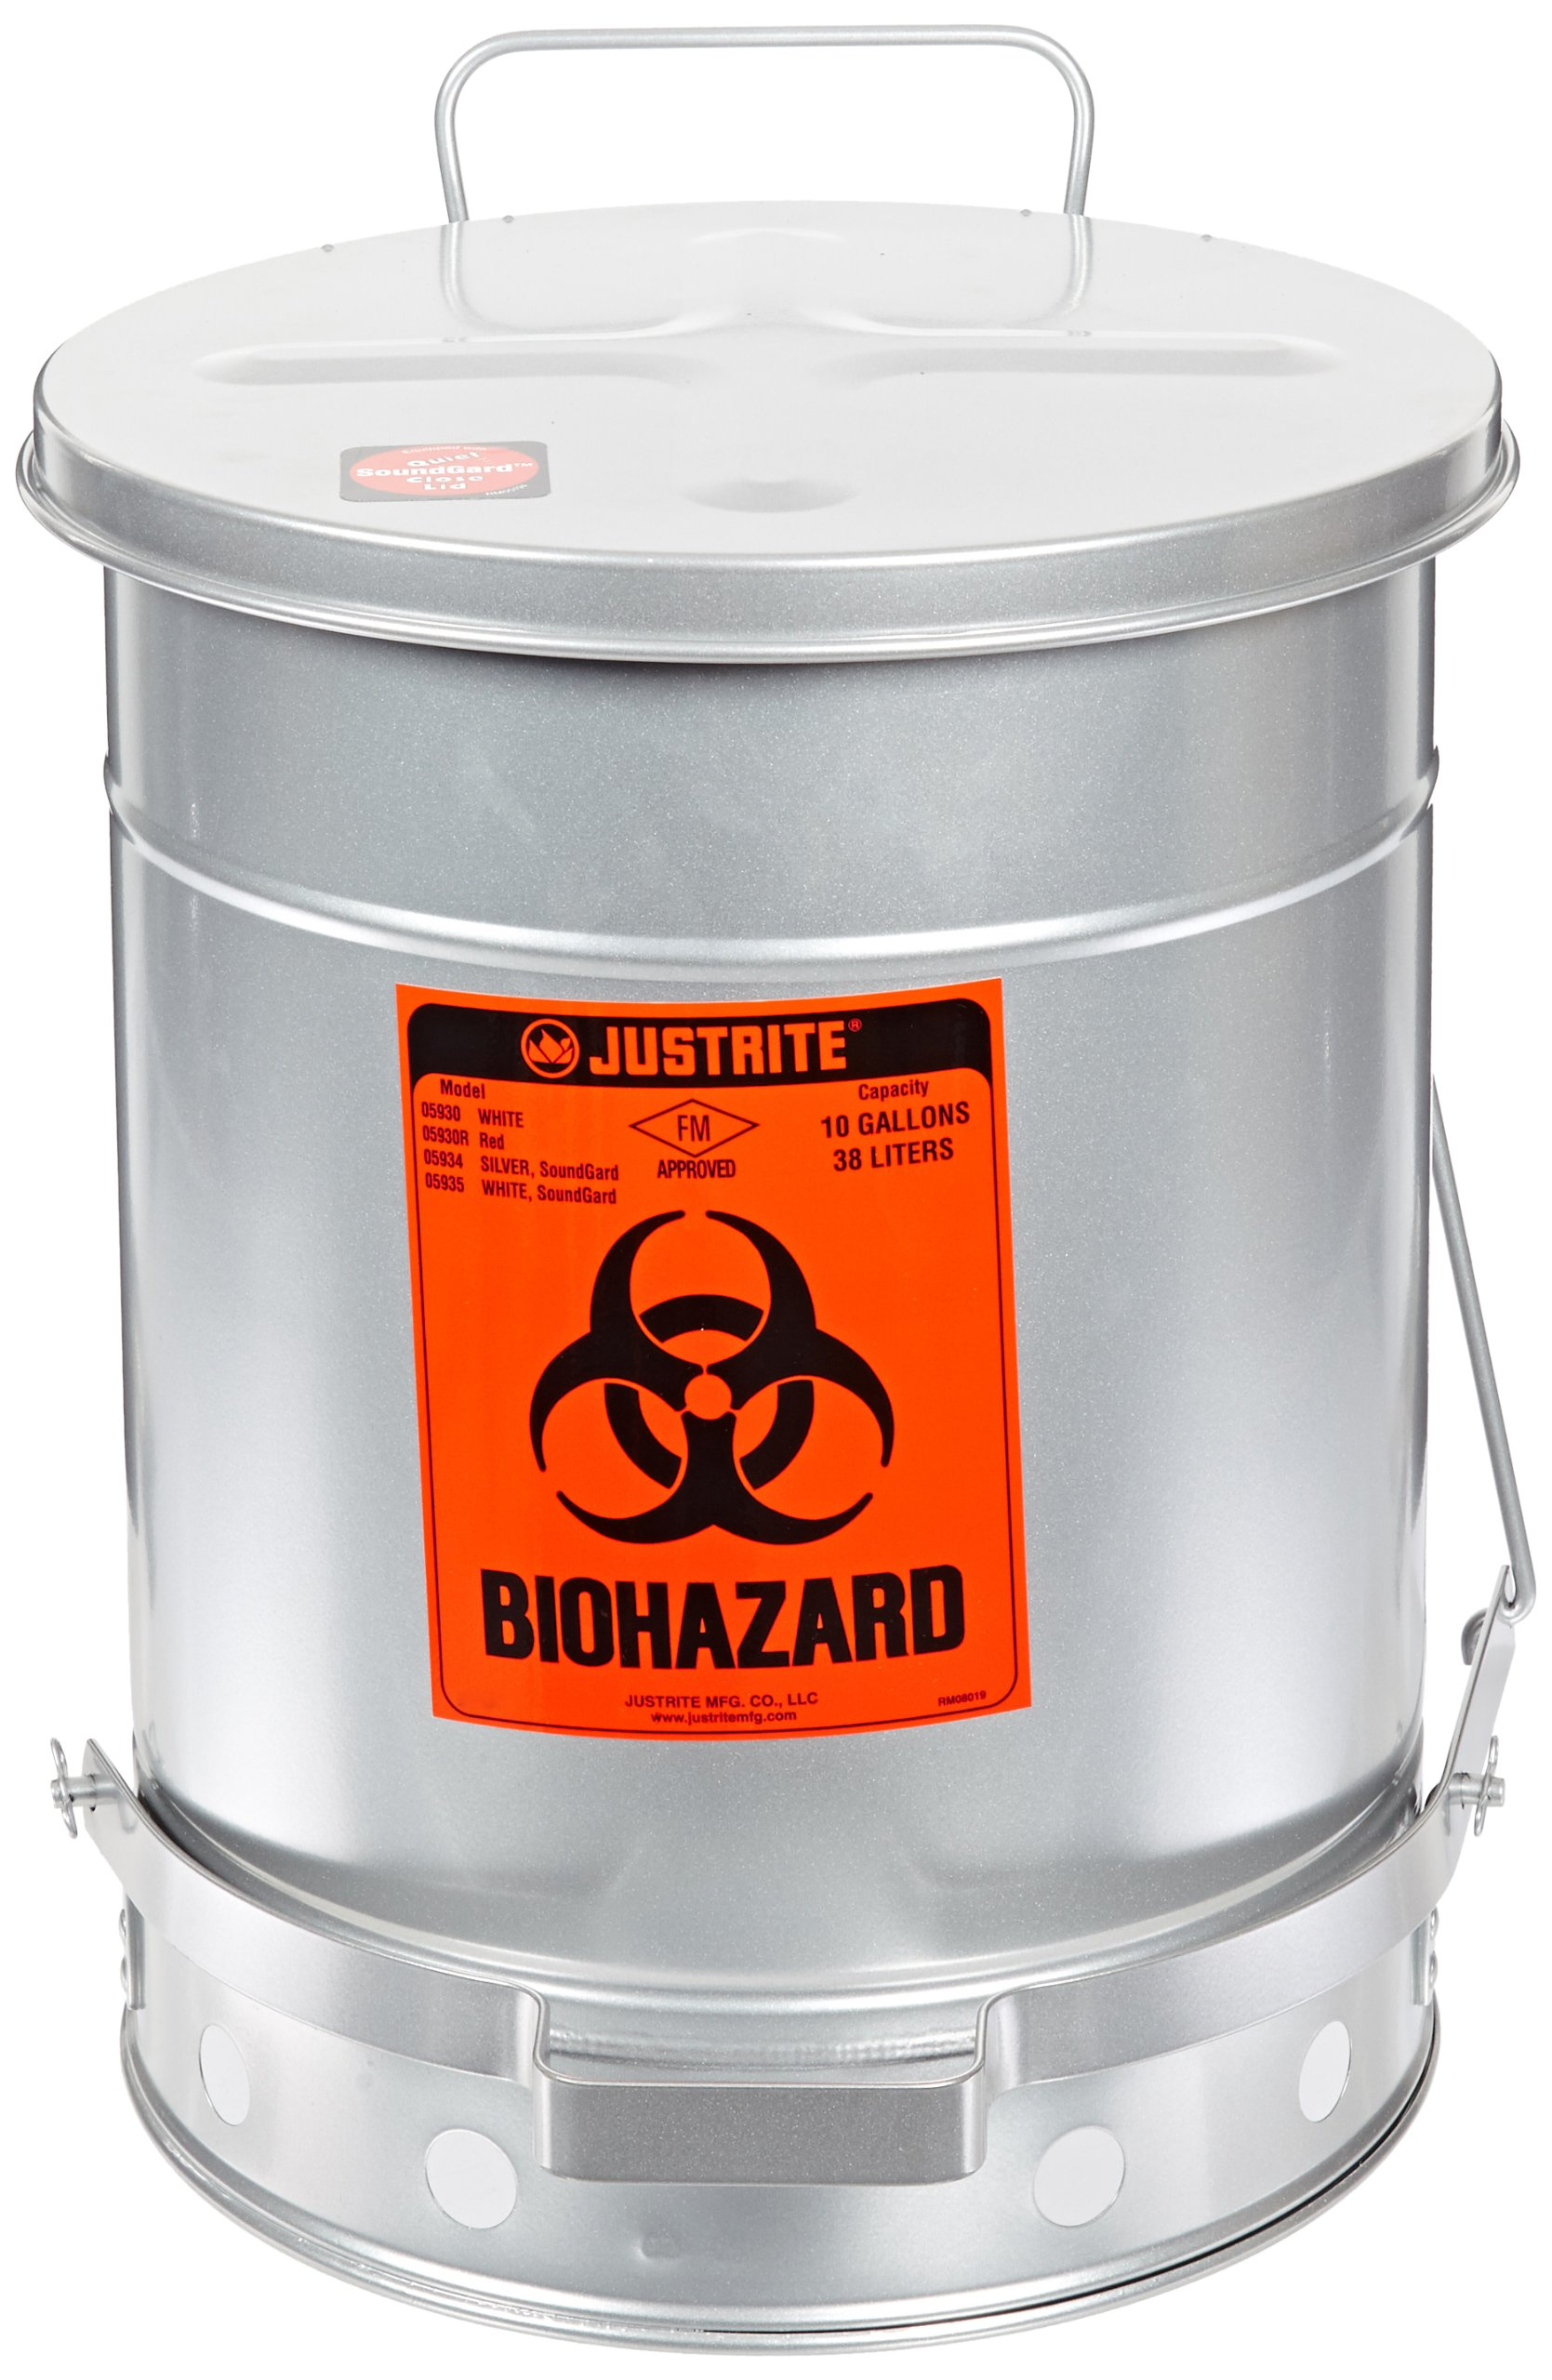 Justrite 05934 SoundGuard Steel Biohazard Waste Container with Foot Operated Cover, 10 Gallon Capacity, 13-15/16'' OD x 18-1/4'' Height, Silver